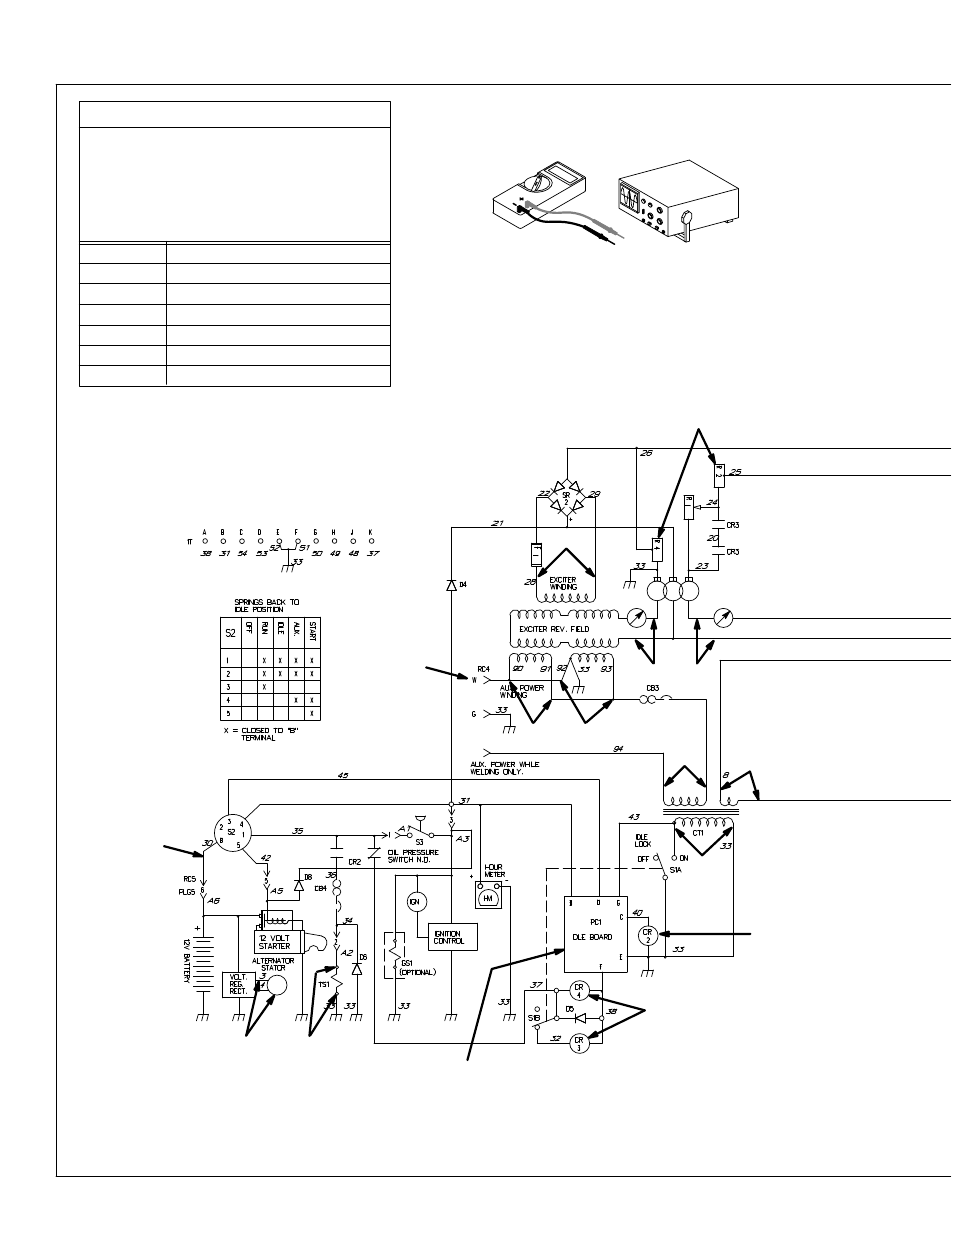 medium resolution of miller electric legend aead 200 le user manual page 22 68 troubleshooting circuit diagram for welding generator miller